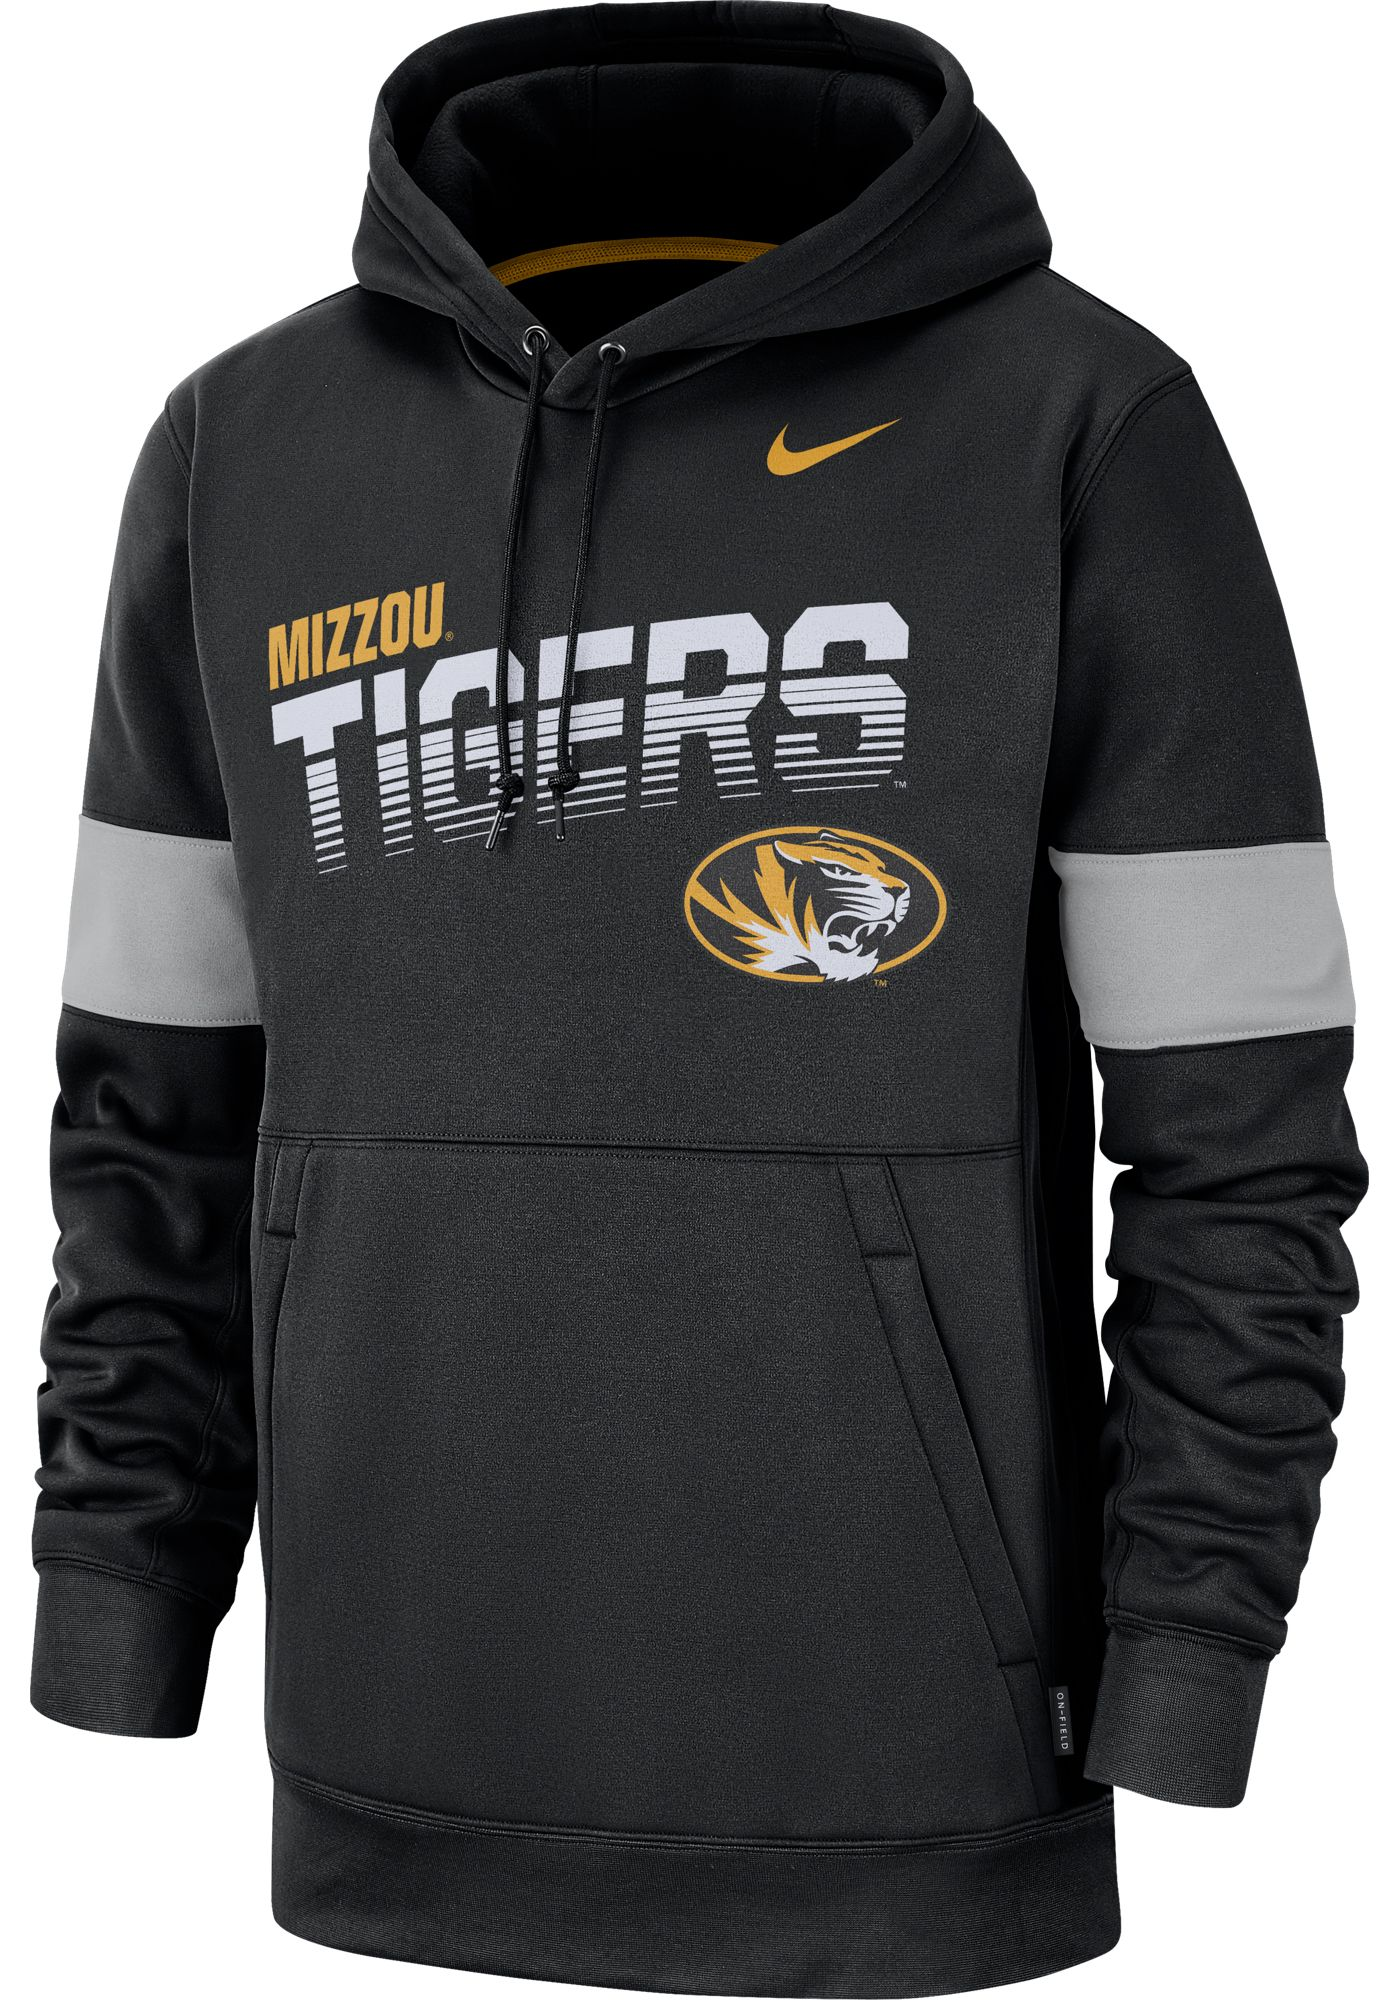 Nike Men's Missouri Tigers Therma Football Sideline Pullover Black Hoodie